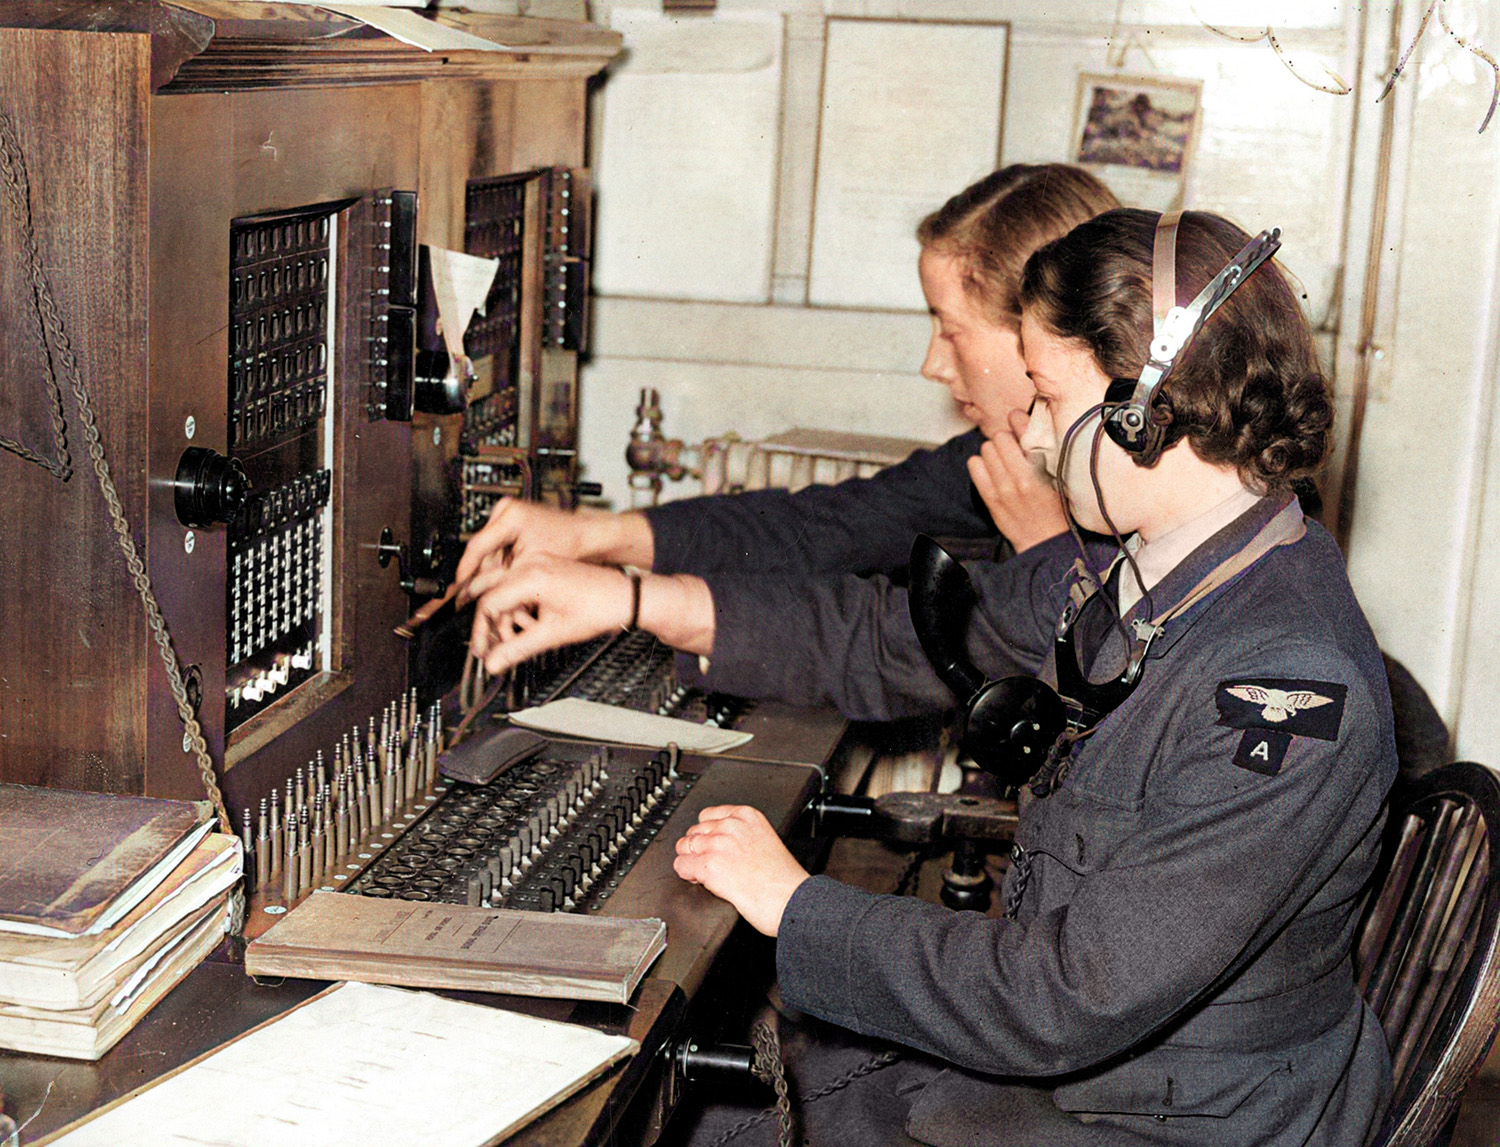 WAAF Telephonists were employed at all the main Group and Sector Stations, which ensured internal RAF communications worked smoothly throughout Fighter Command (MoD/AHB/RAF)